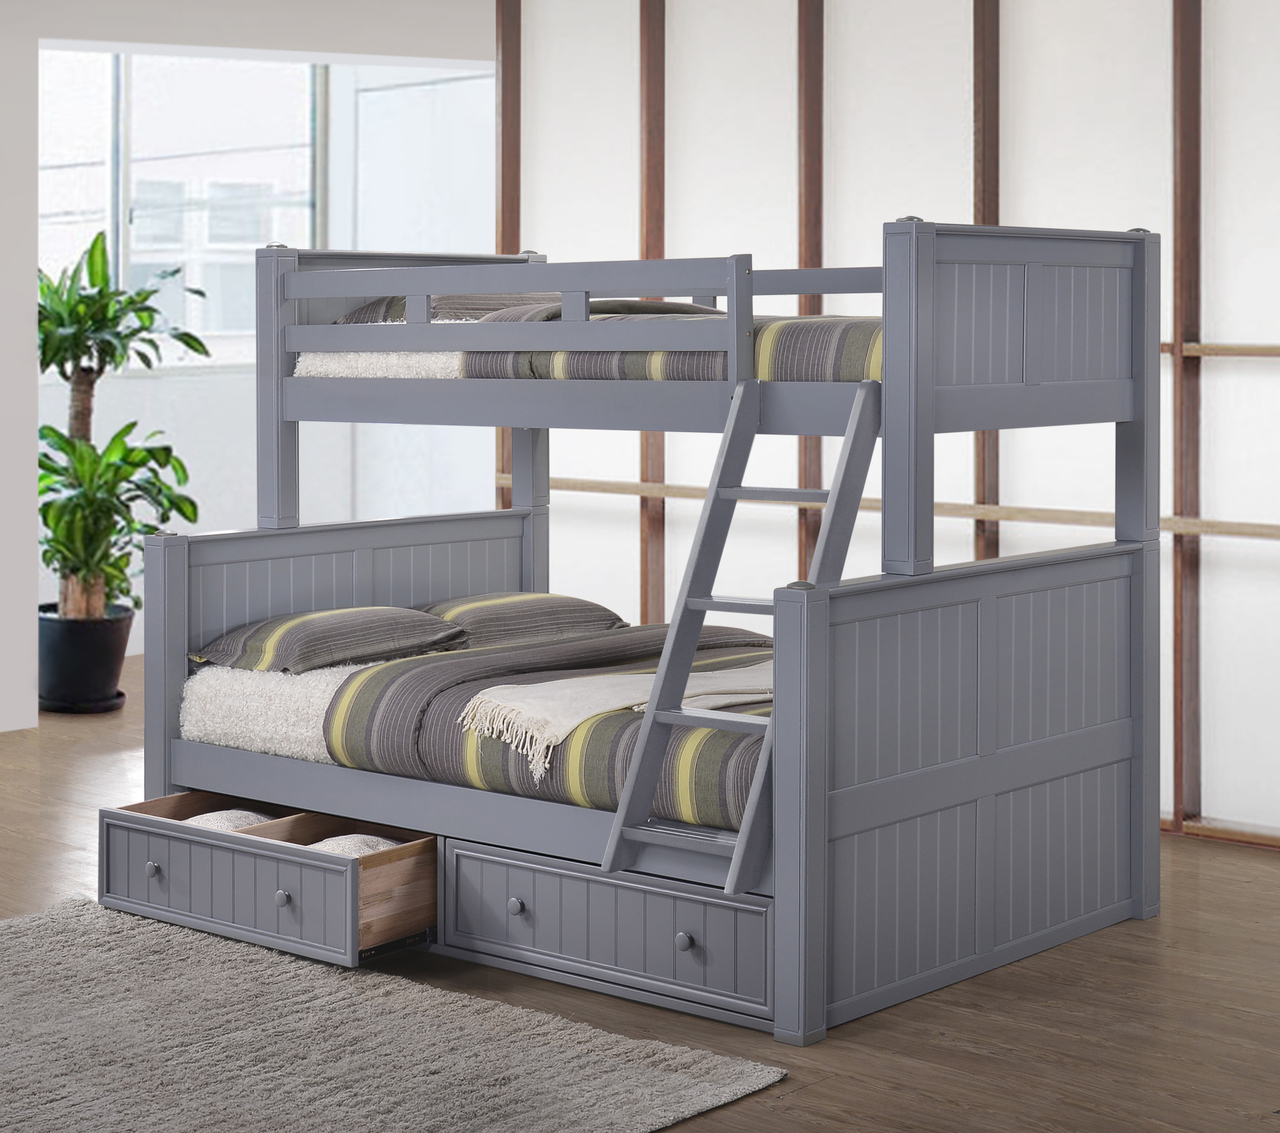 Unique bunk beds twin over full ... twin full bunk bed · black · dark pecan · walnut · iprncyr